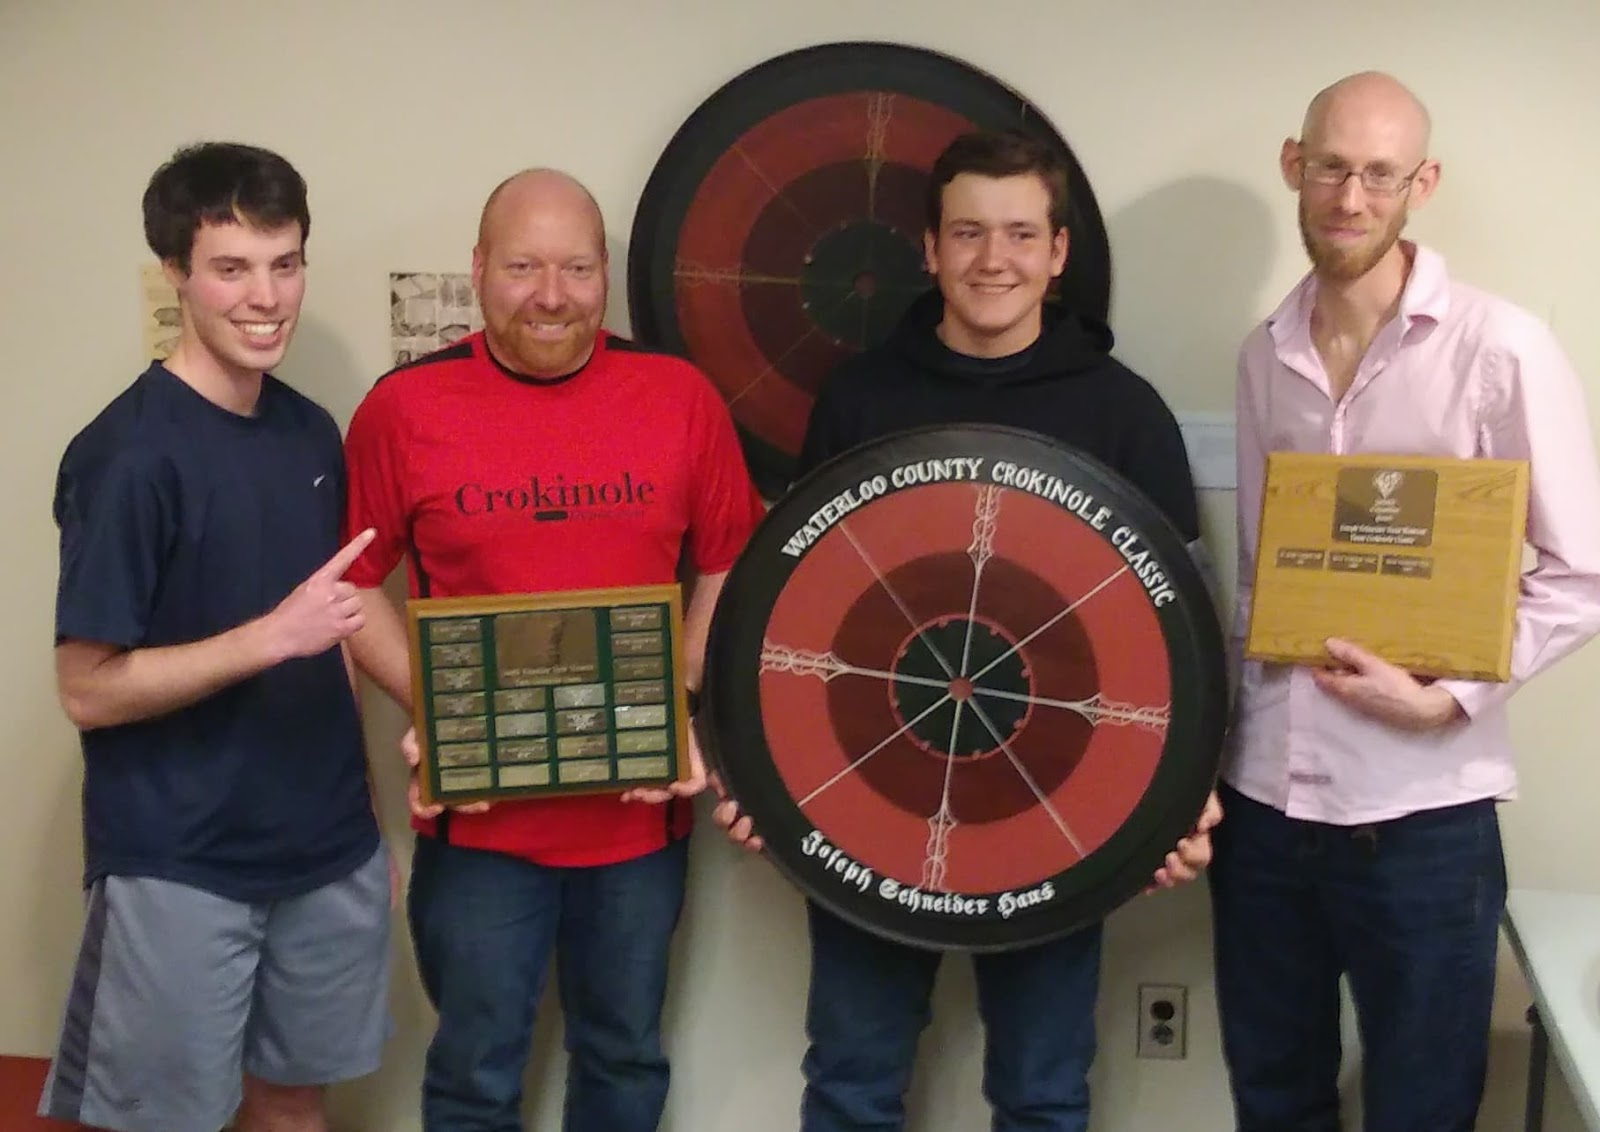 To play crokinole well with enthusiasm and sportsmanship Waterloo Crokinole Club - 2018 Champions